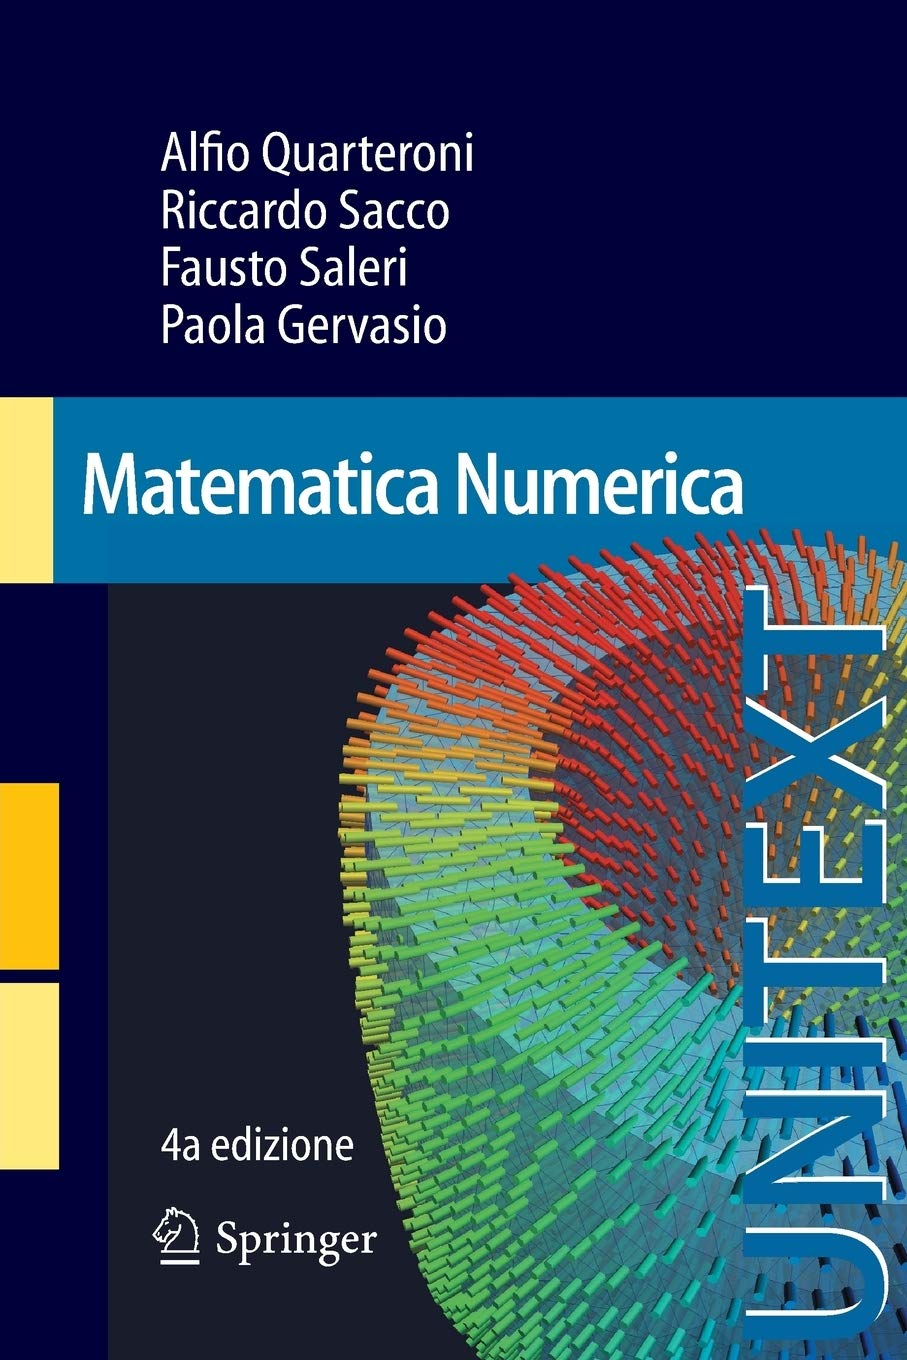 Download Matematica Numerica 